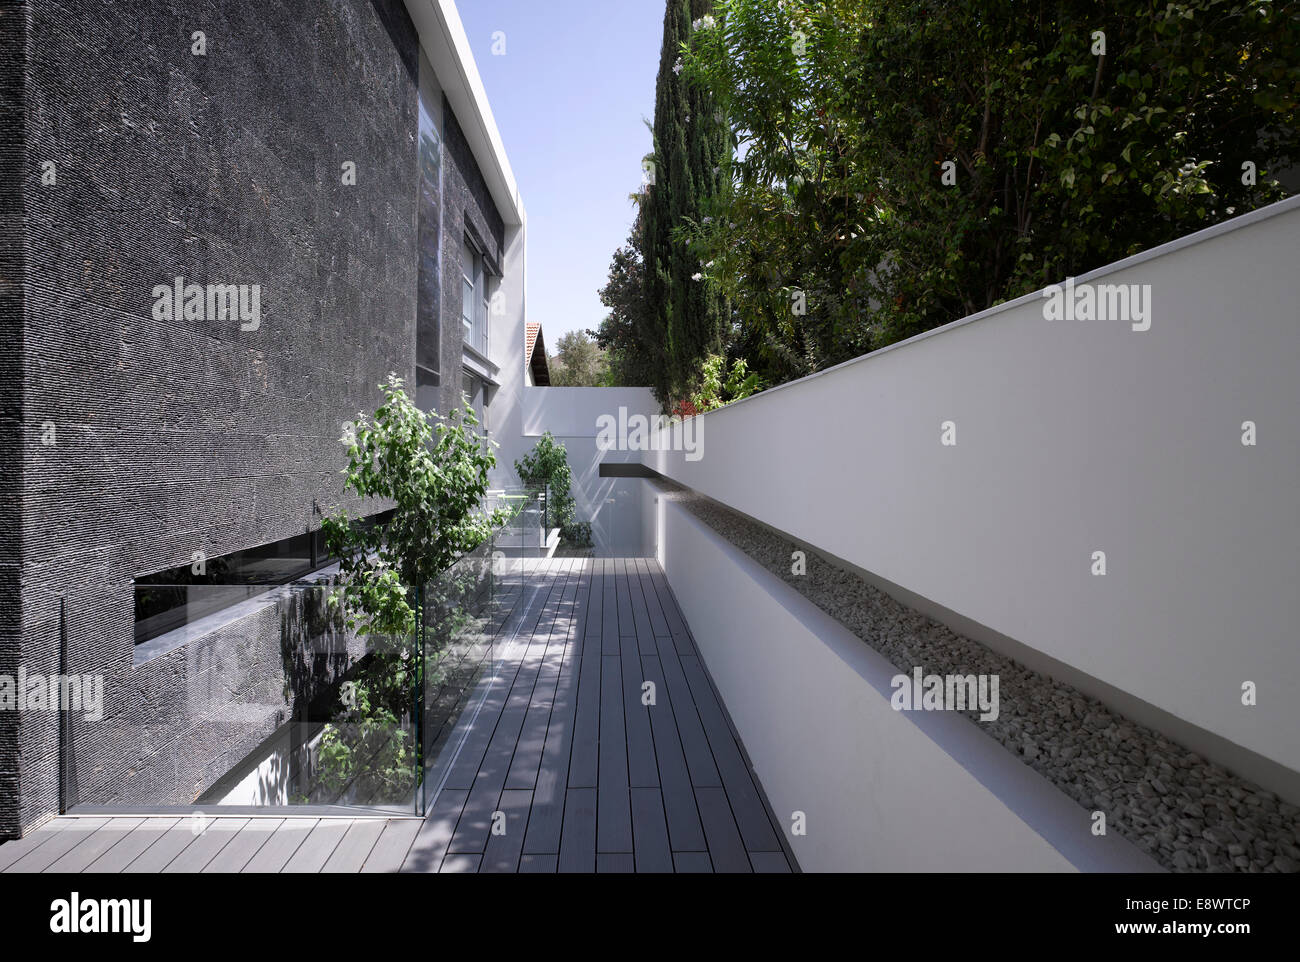 Wooden walkway with white recessed wall and exterior of H House, Israel, Middle East. - Stock Image